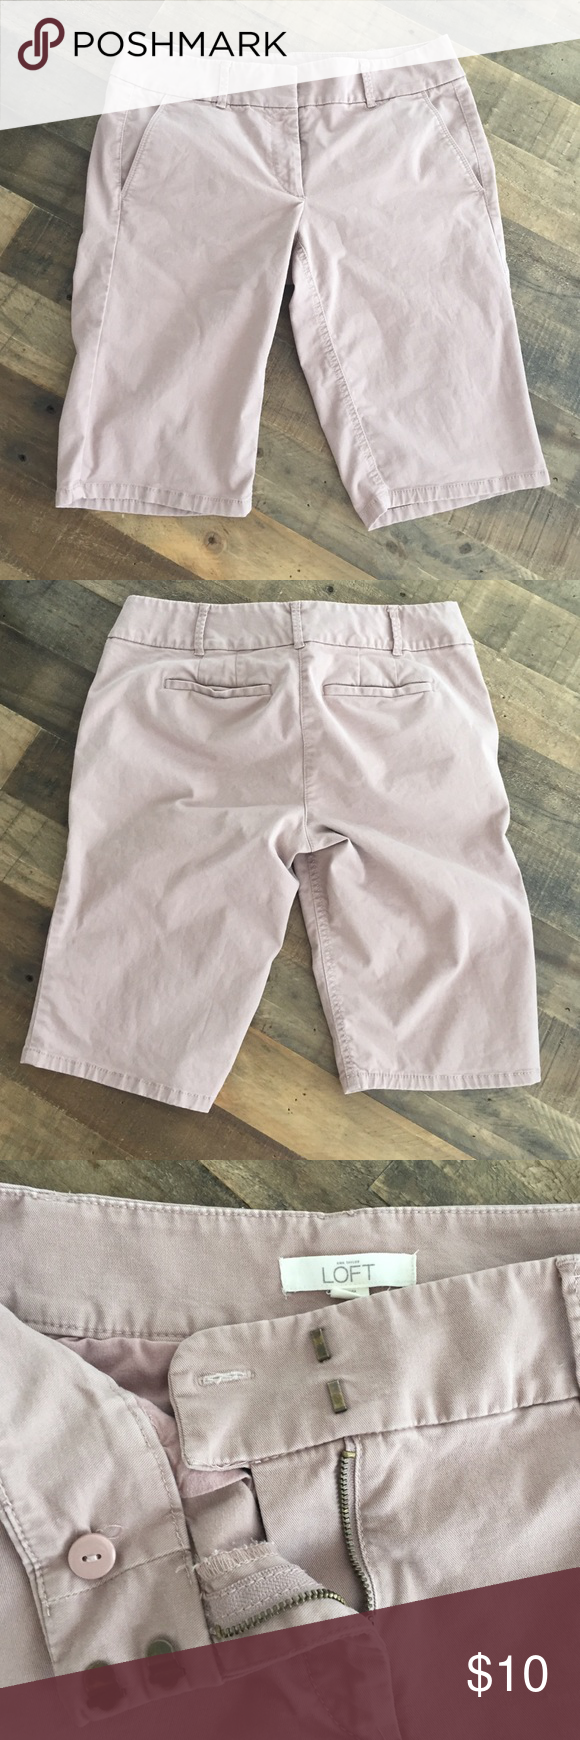 LOFT shorts LOFT shorts. Size 6. Marisa fit. 97% cotton. 3% spandex. Smoke free and pet free home. Dusty pink color. Clasp Britton and zipper all work. 19.75 inches from waist to hem. Rise is 12 inches. LOFT Shorts Bermudas